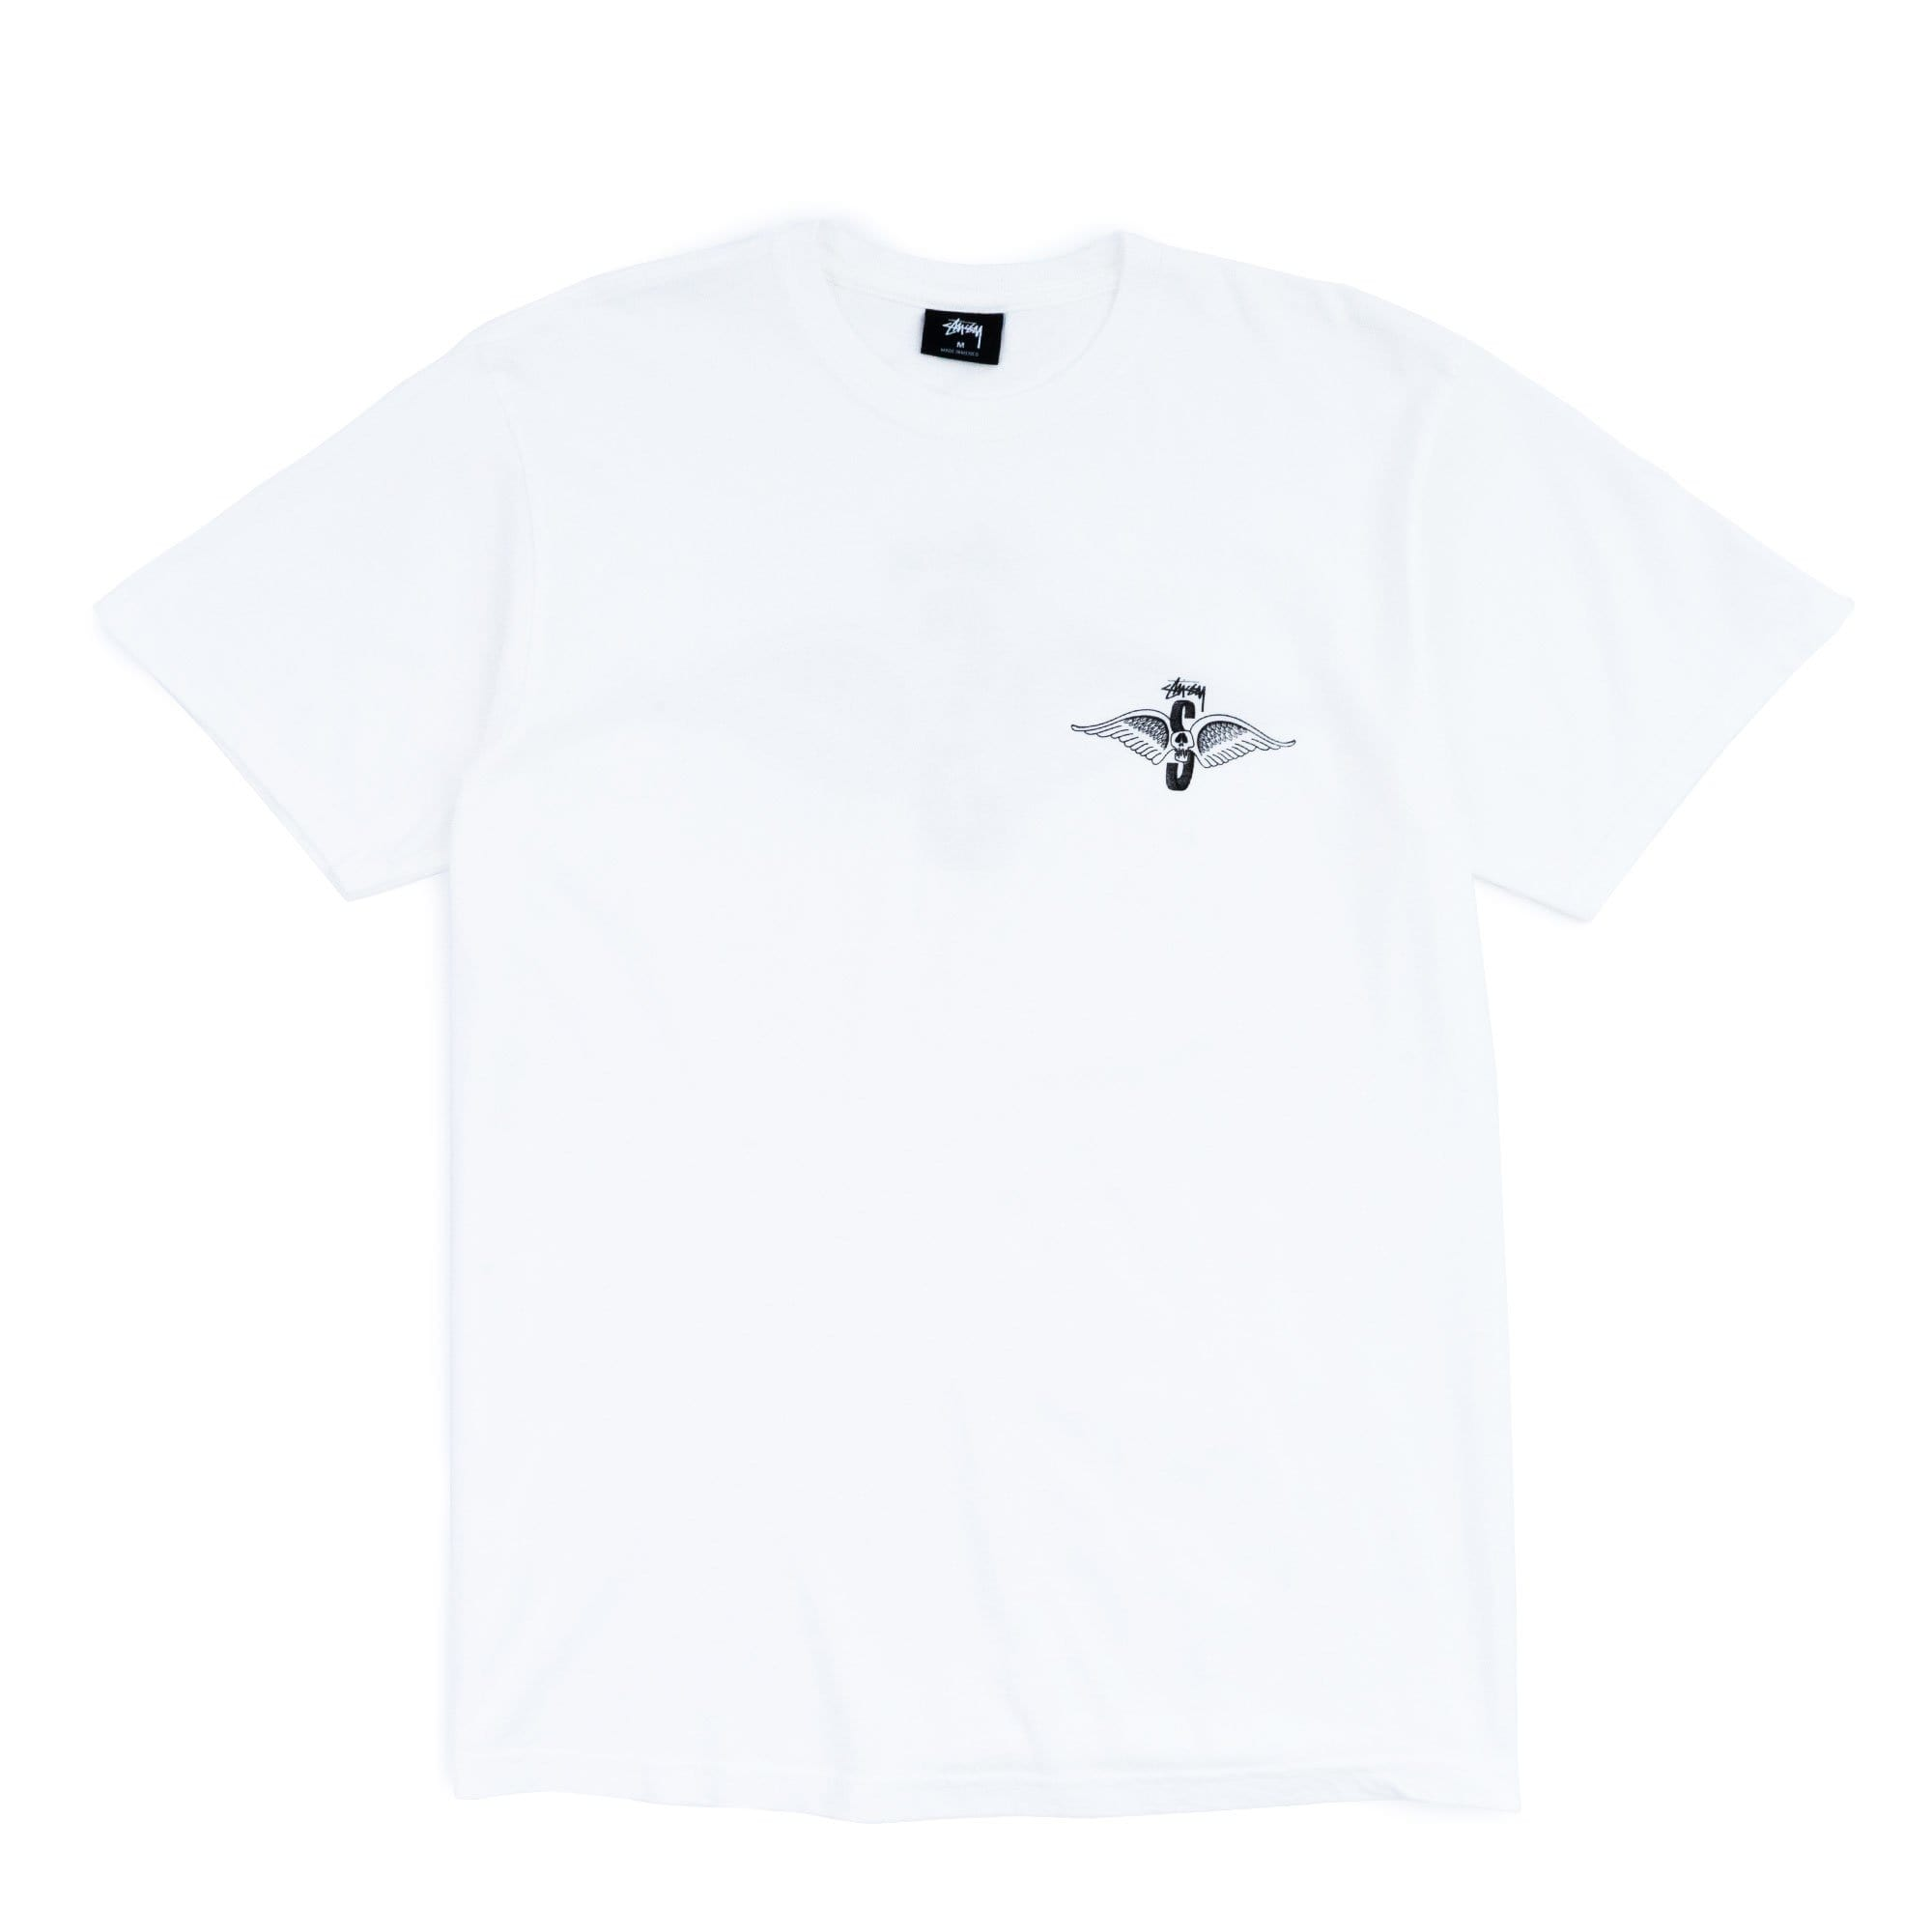 Stüssy T-Shirts M Skull Wings Pig. Dyed Tee